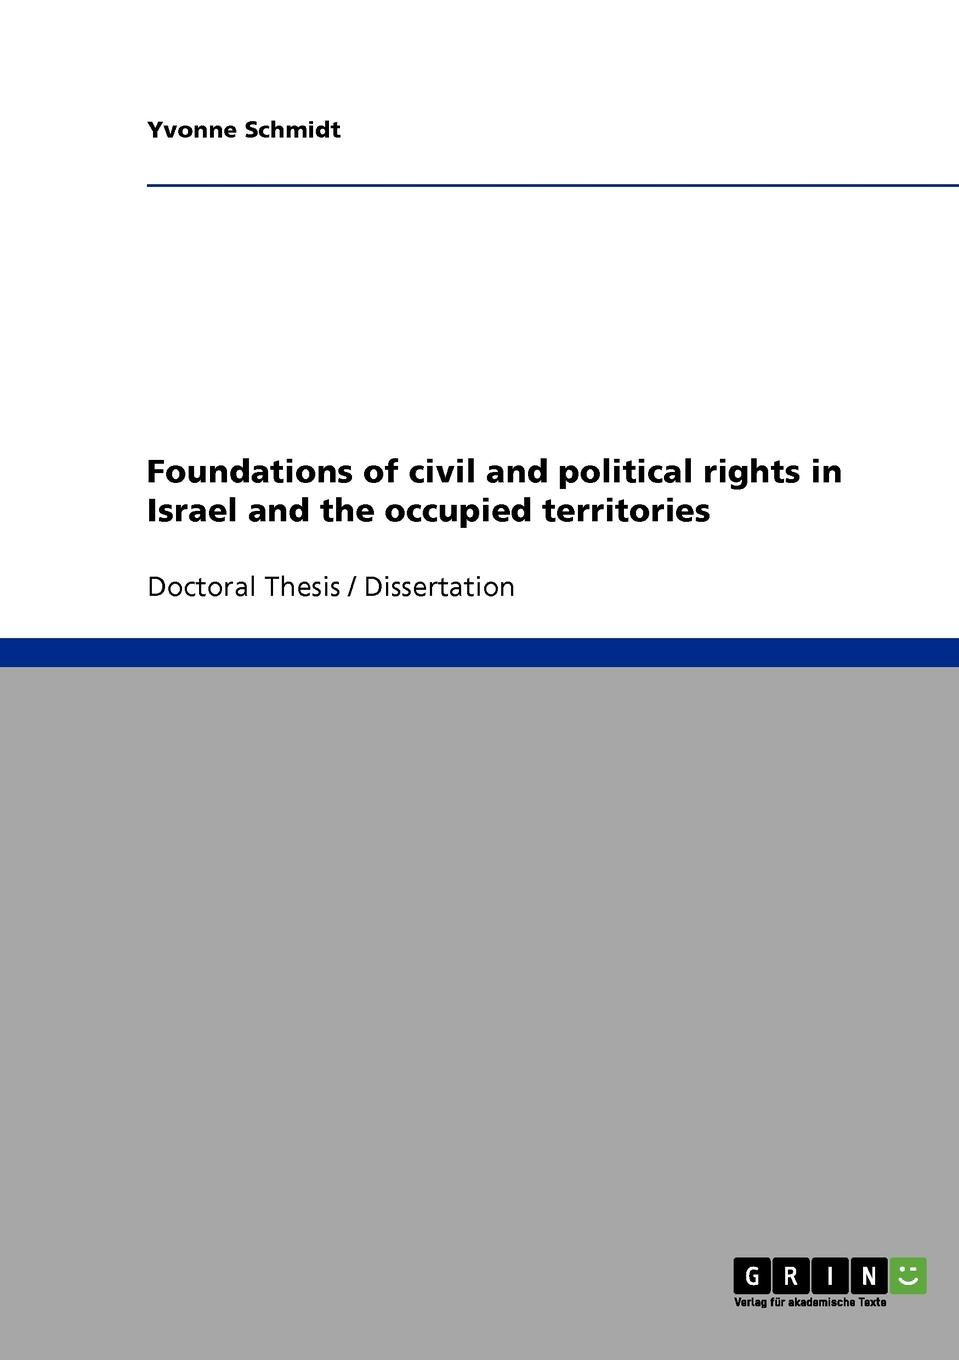 Yvonne Schmidt Foundations of civil and political rights in Israel and the occupied territories